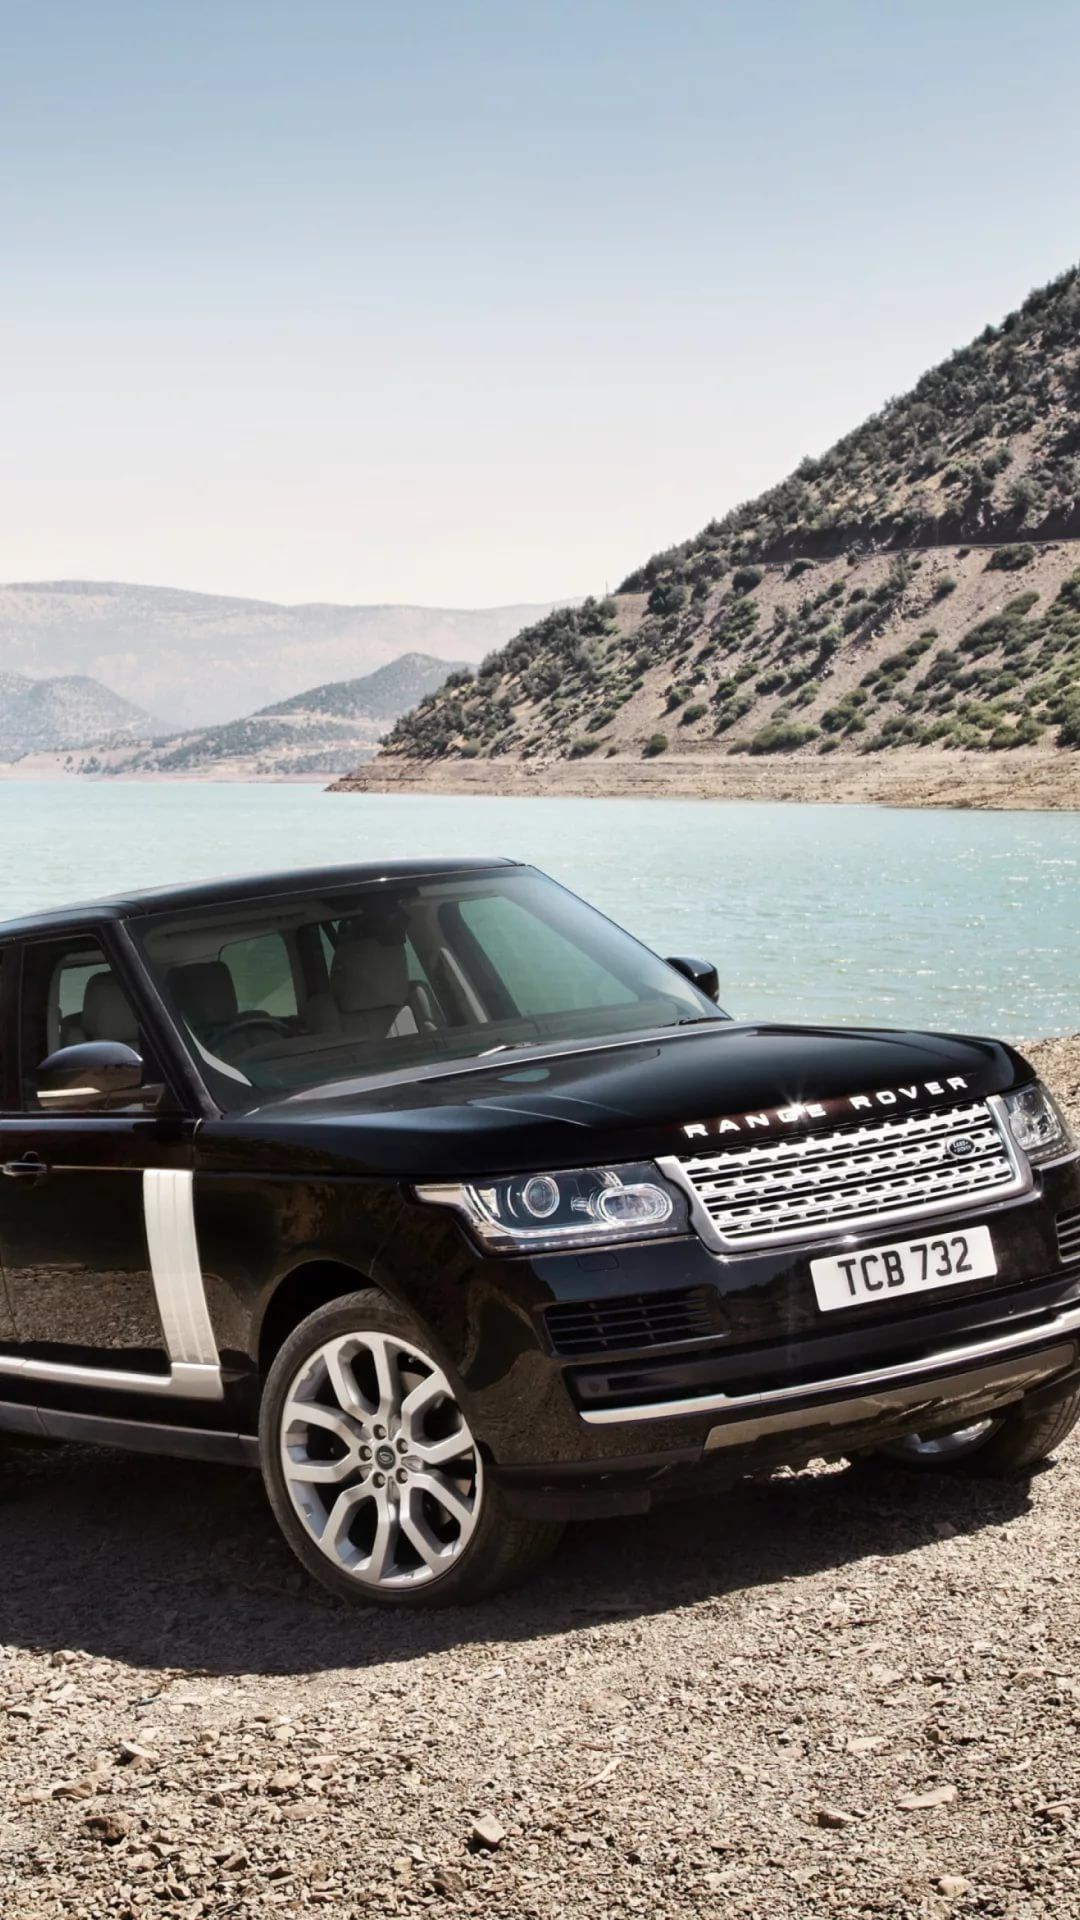 Range Rover iPhone 6 Wallpaper